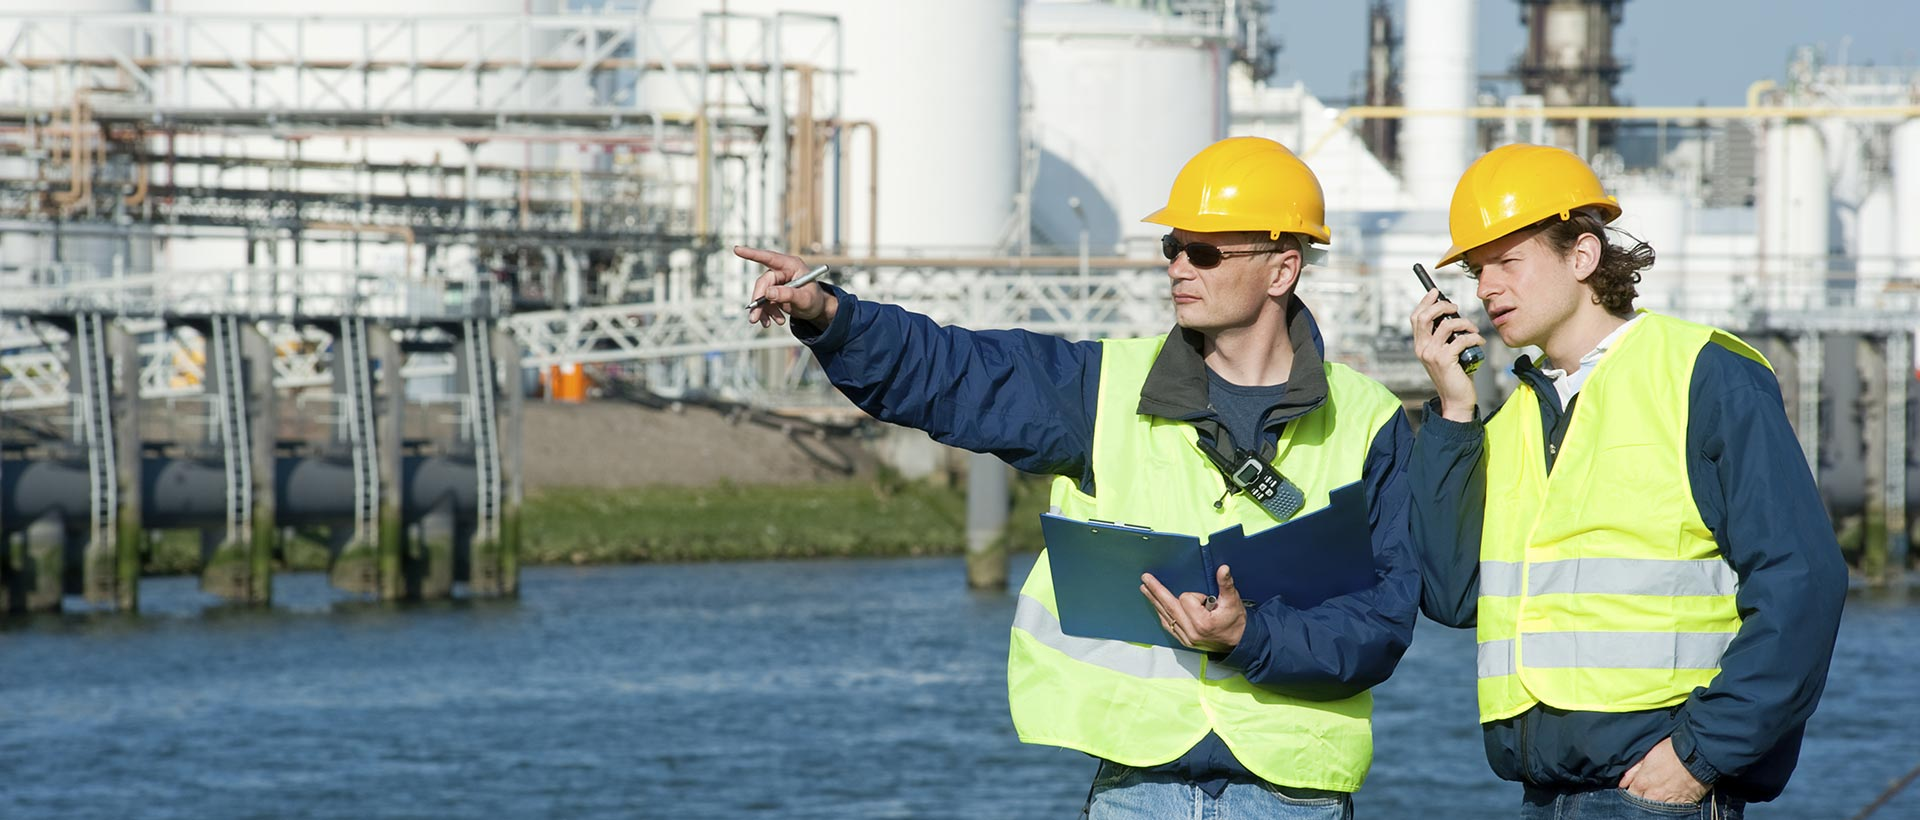 ExakTime - Oil and Gas Time & Attendance Solutions